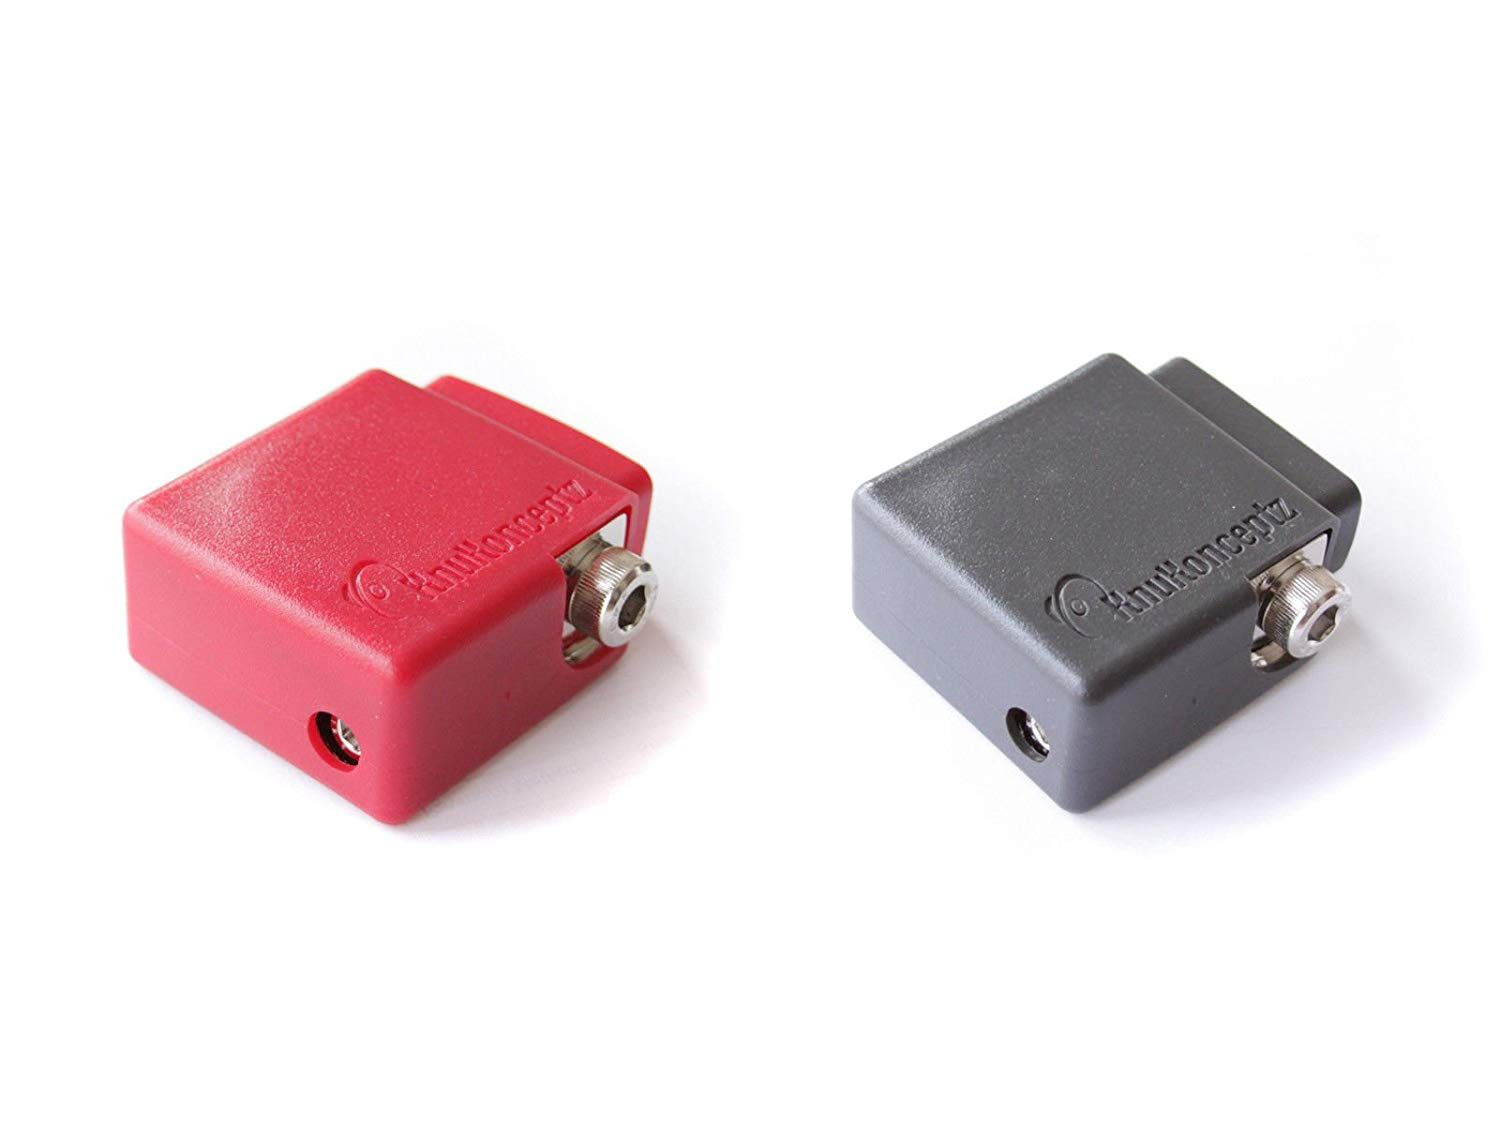 Knukonceptz Ultimate Positive And Negative Battery Terminal Pair Learn More By Visiting The Image Battery Terminal Recondition Batteries Battery Accessories